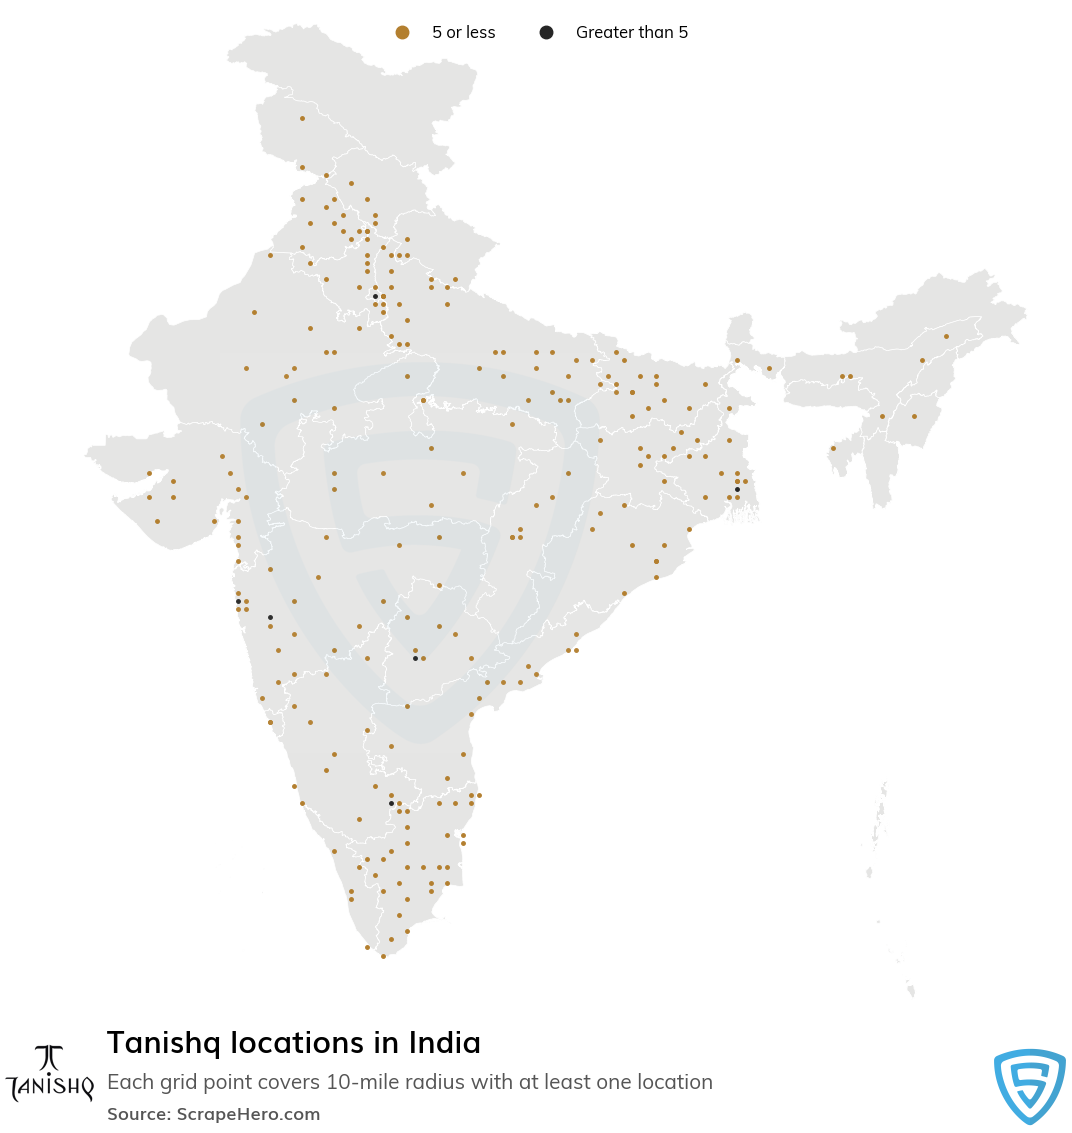 Map of Tanishq locations in India in 2021